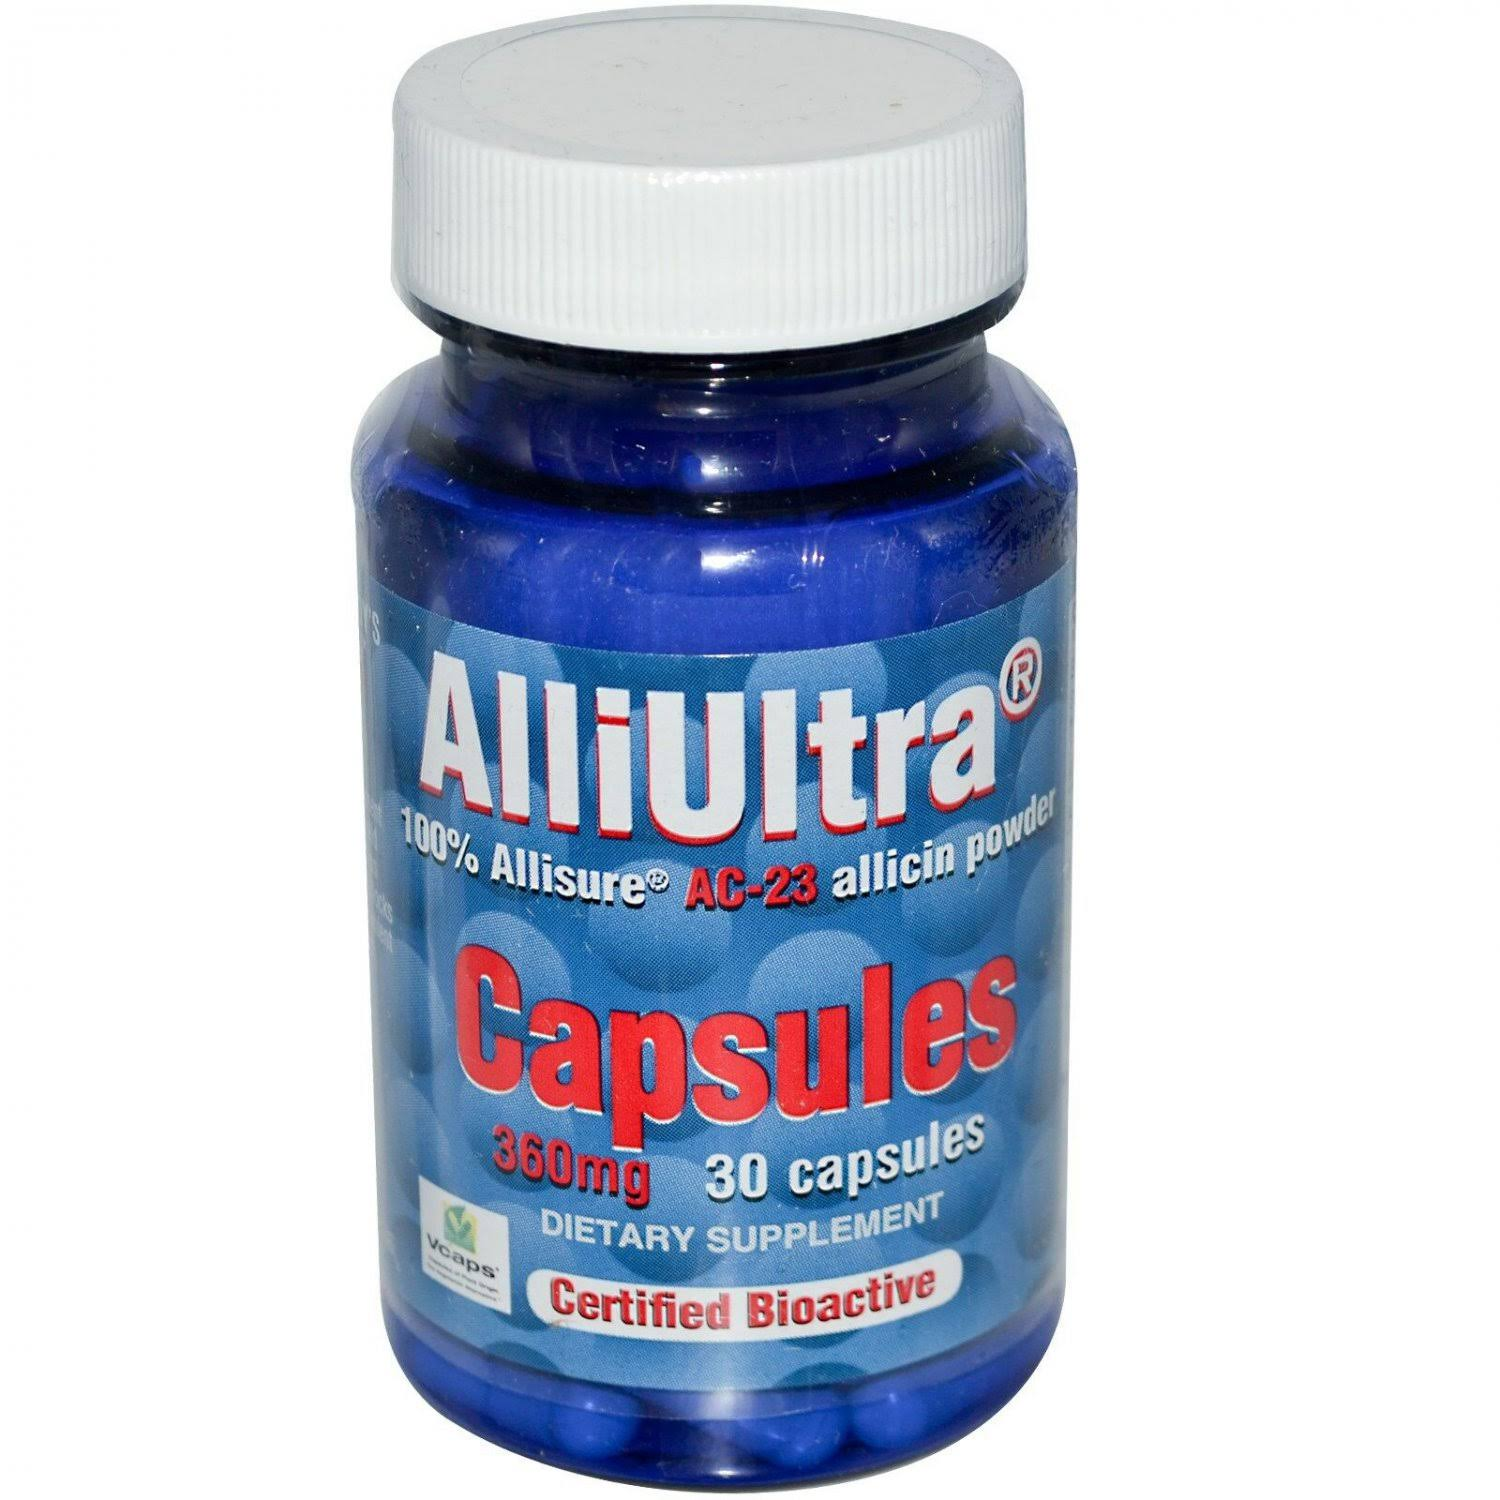 Allimax Alliultra AC-23 Allicin Capsules - 360mg, x30